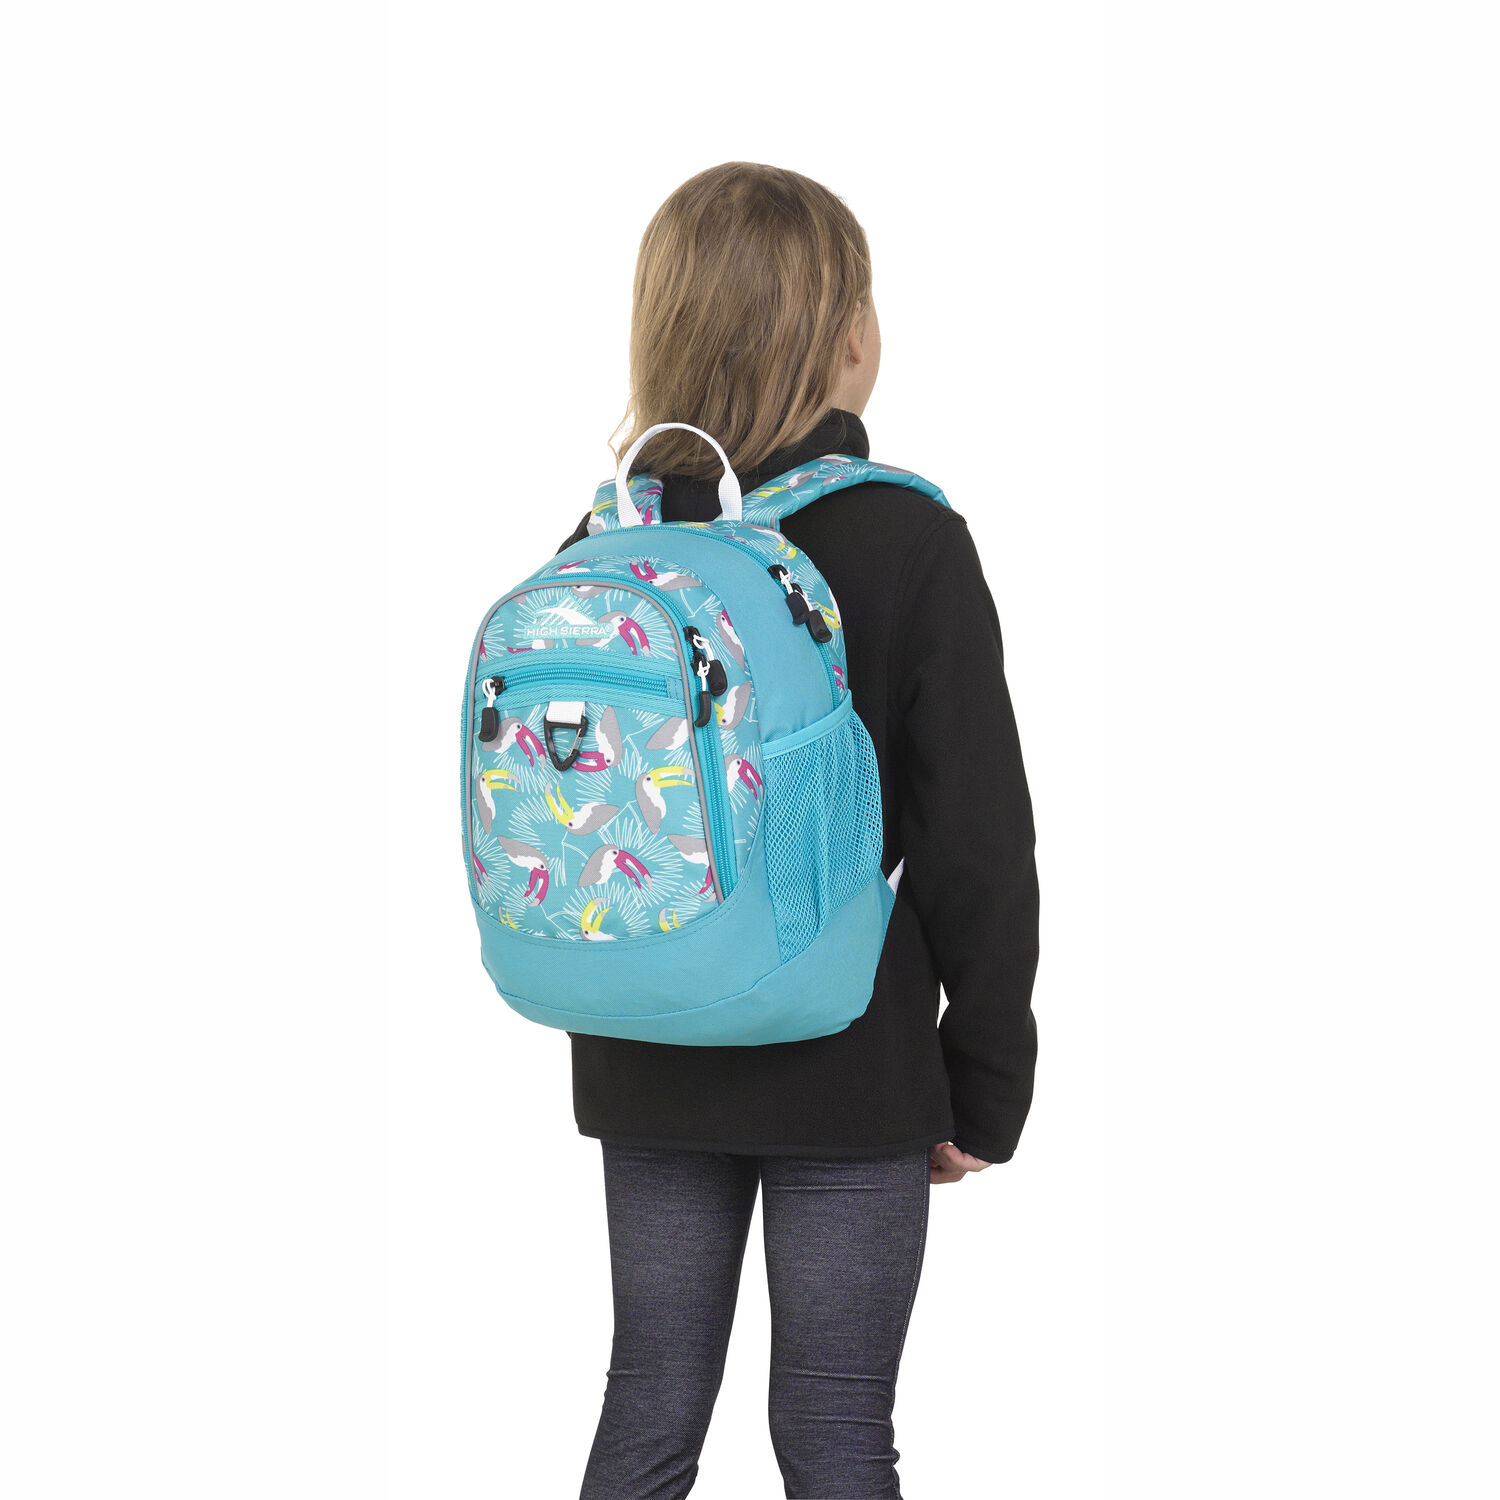 678cb83f1 High Sierra Mini Fatboy Backpack in the color Toucan/Tropic Teal/White.